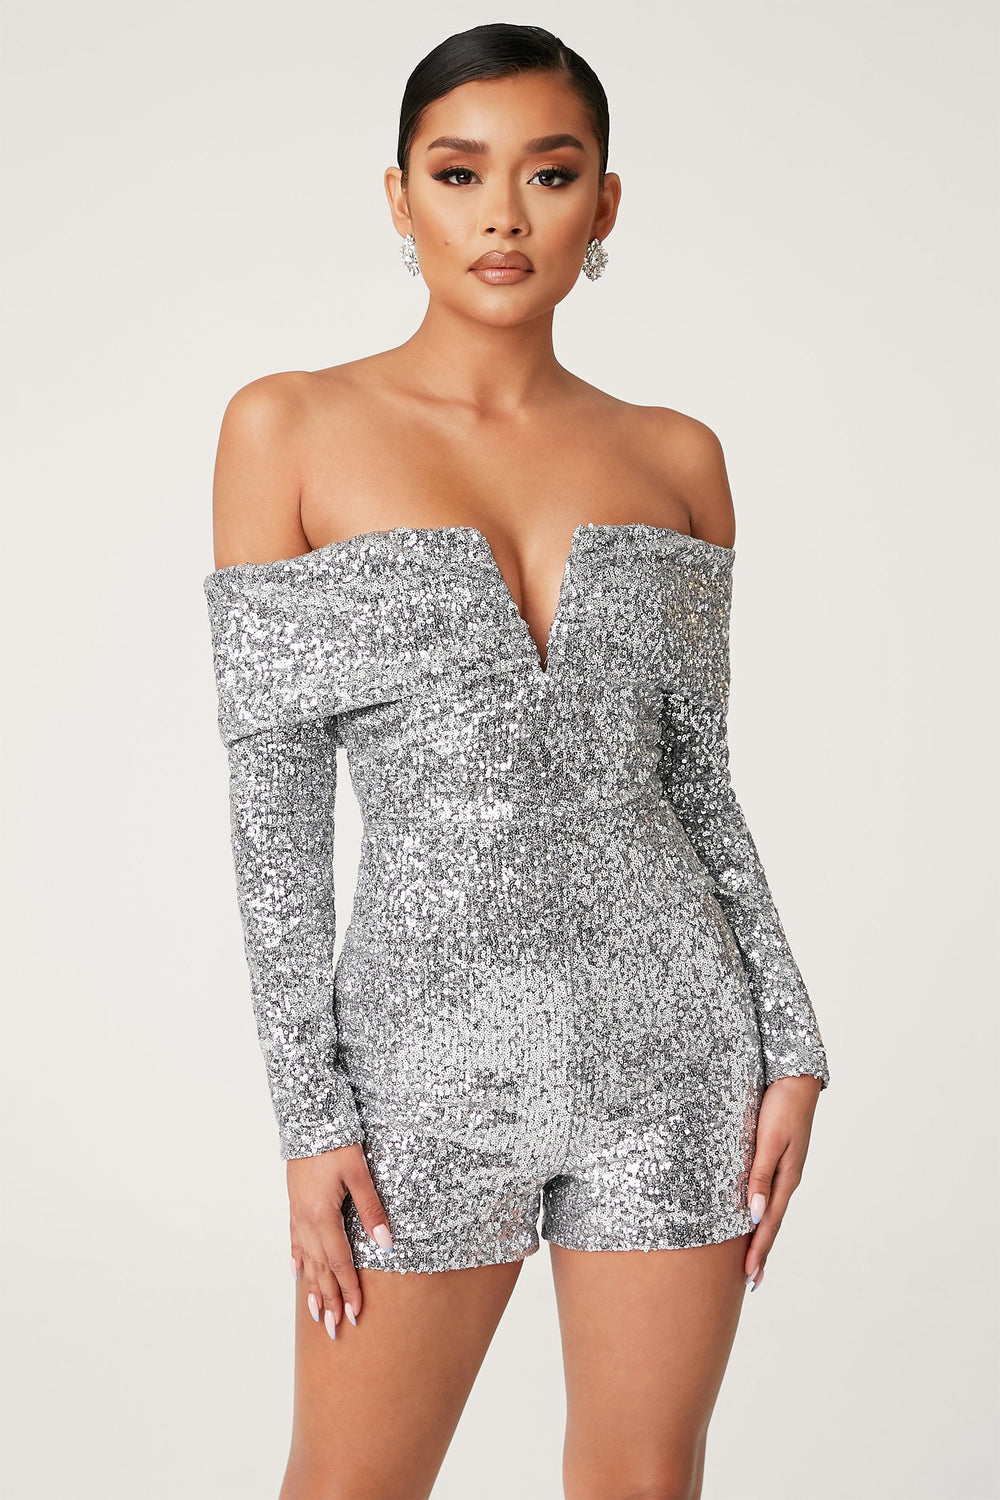 Kella Sequin Off The Shoulder Playsuit - Silver - MESHKI ?id=13900588646475